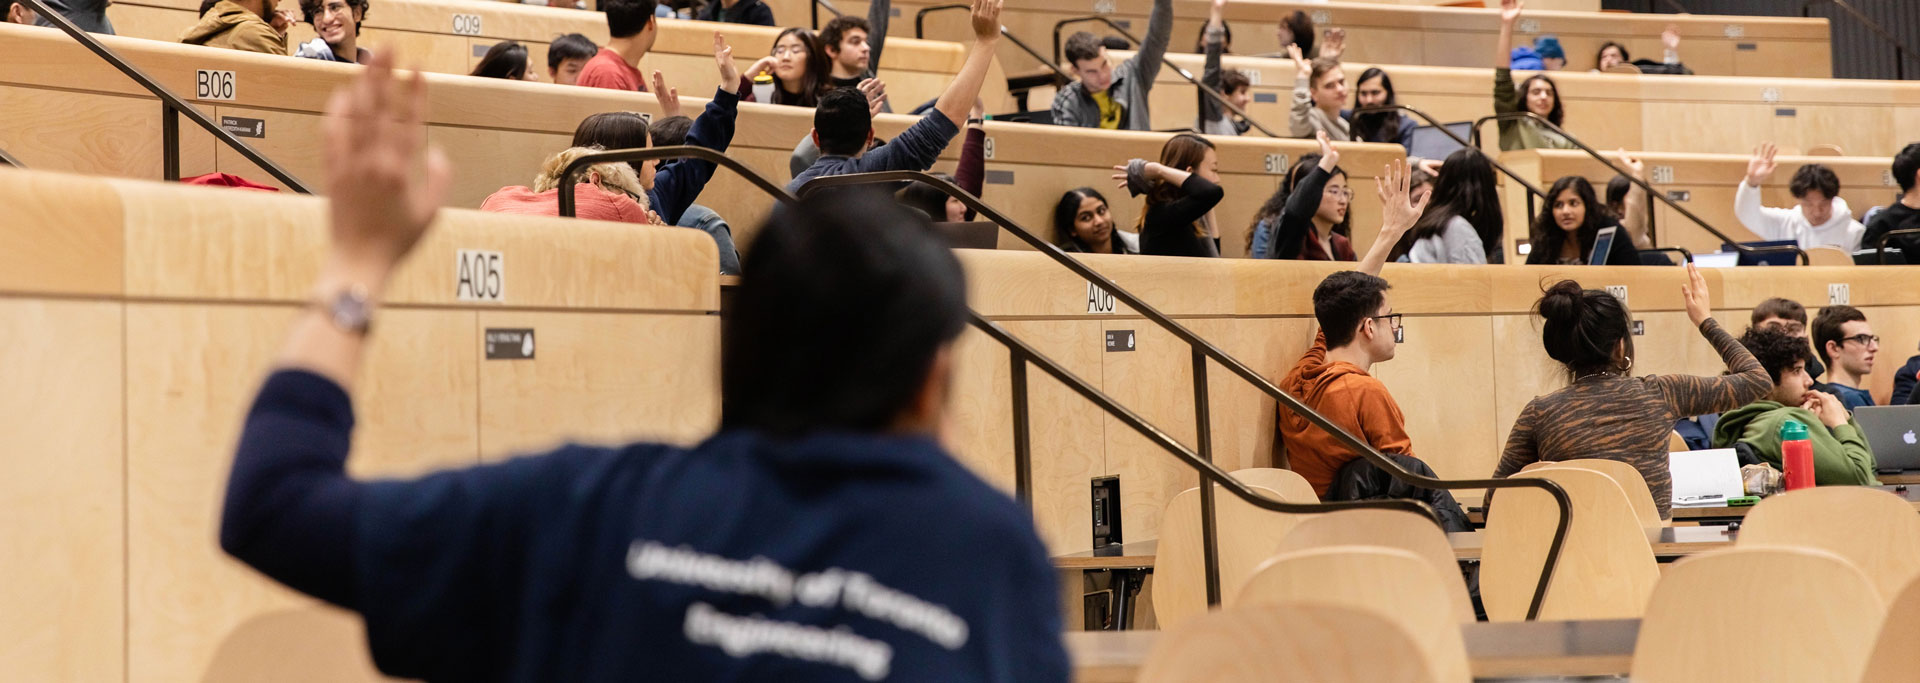 students with hands raised in a class